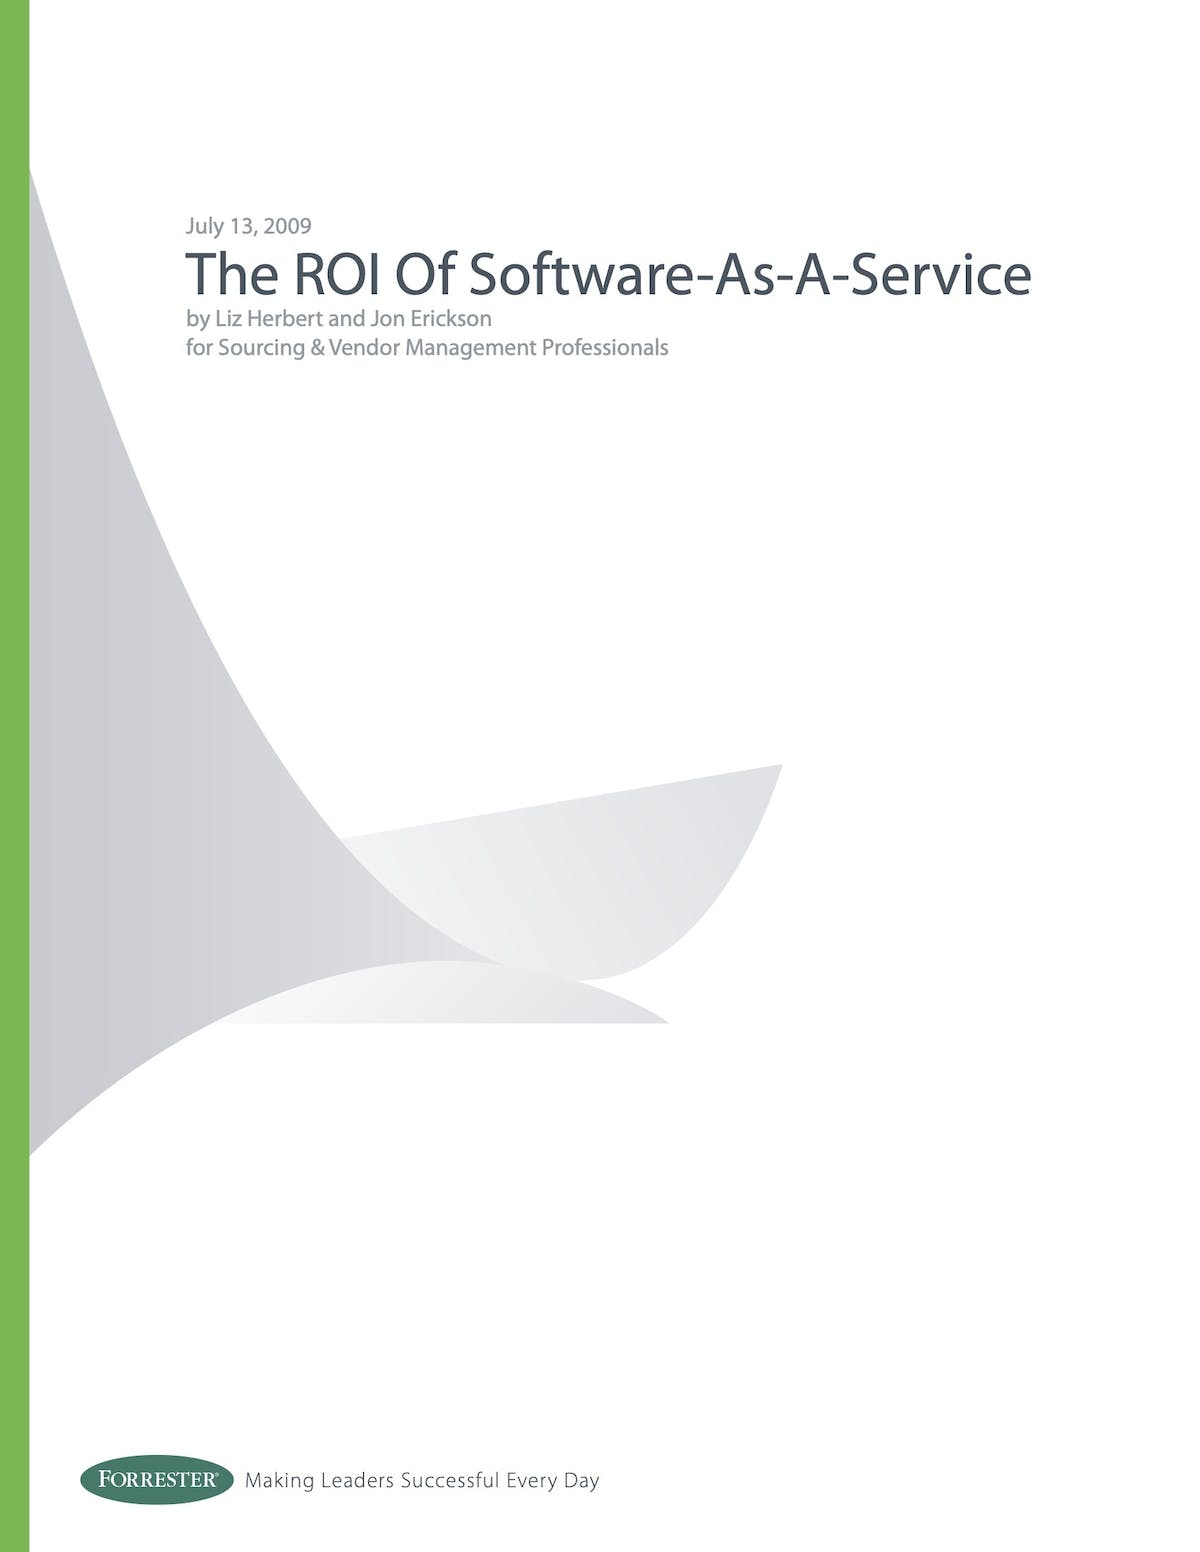 SAP Business ByDesign White Paper - The ROI of Software-as-a-Service